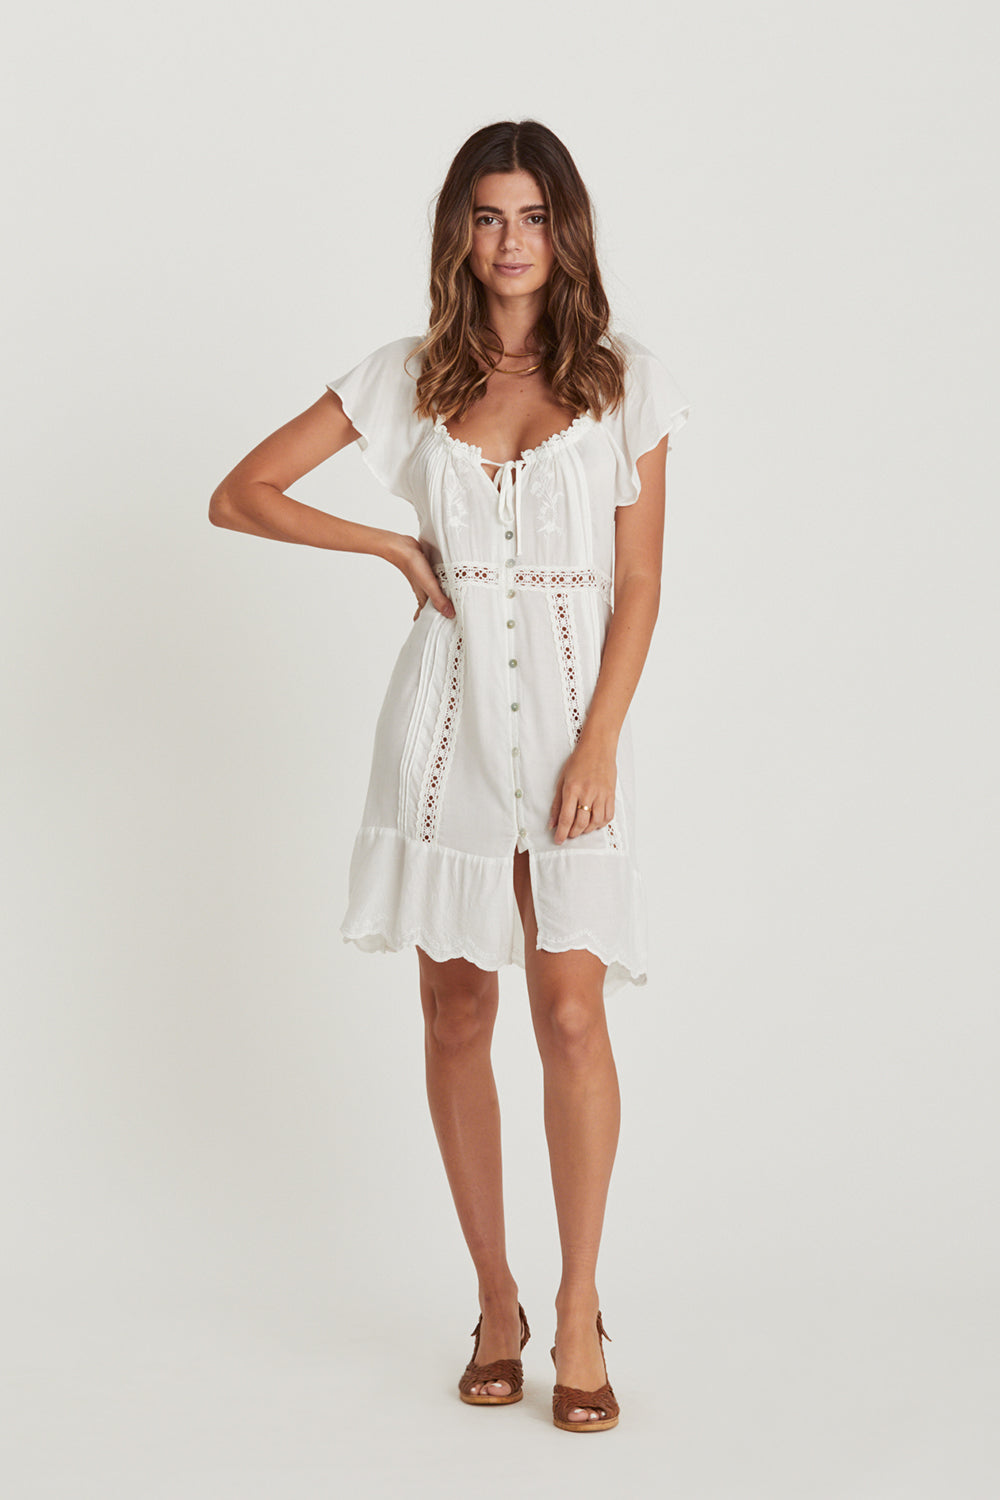 Dreamers Mini Dress in Whisper White